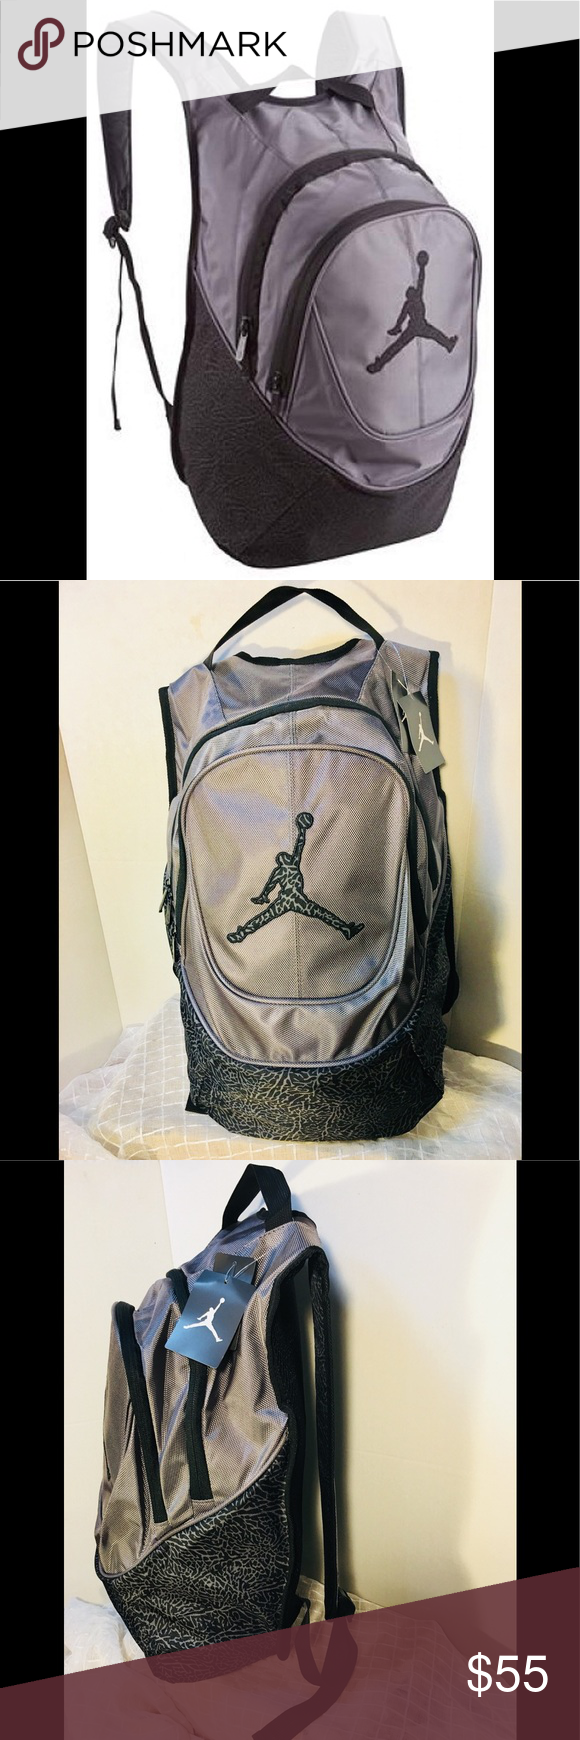 a2a8b27de86a35 AIR JORDAN GRAY ELEPHANT BACKPACK BRAND NEW WITH TAGS AIR JORDAN ELEPHANT  BACKPACK